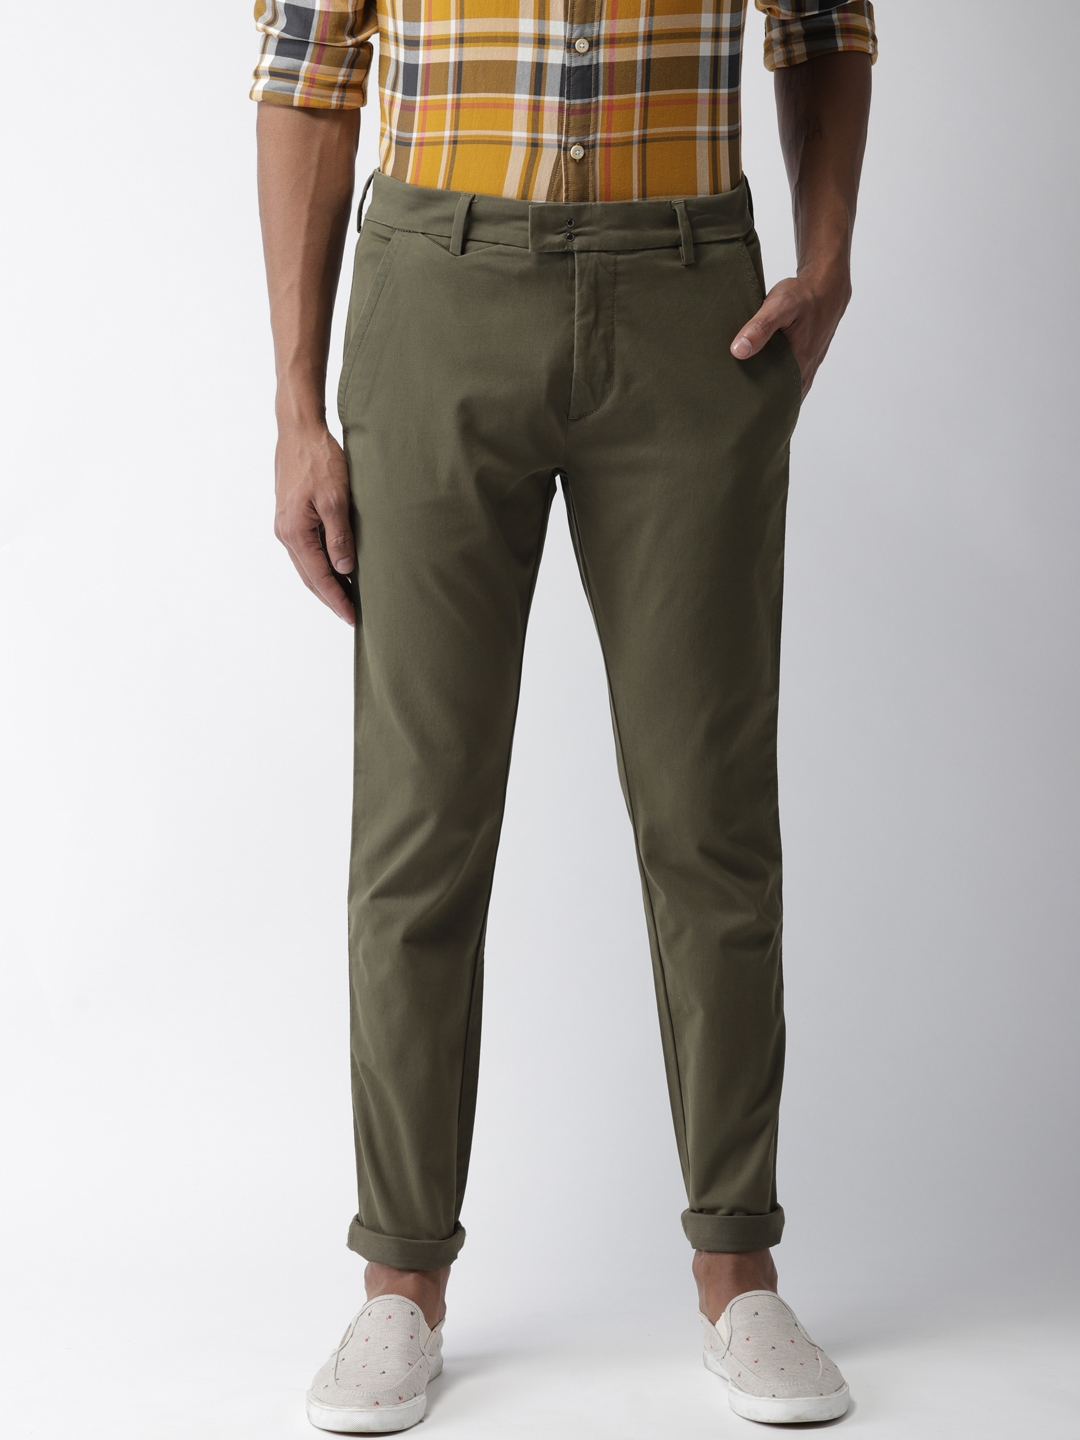 295749e6d8d Buy Levis Men Olive Green 512 Slim Tapered Fit Solid Chinos ...